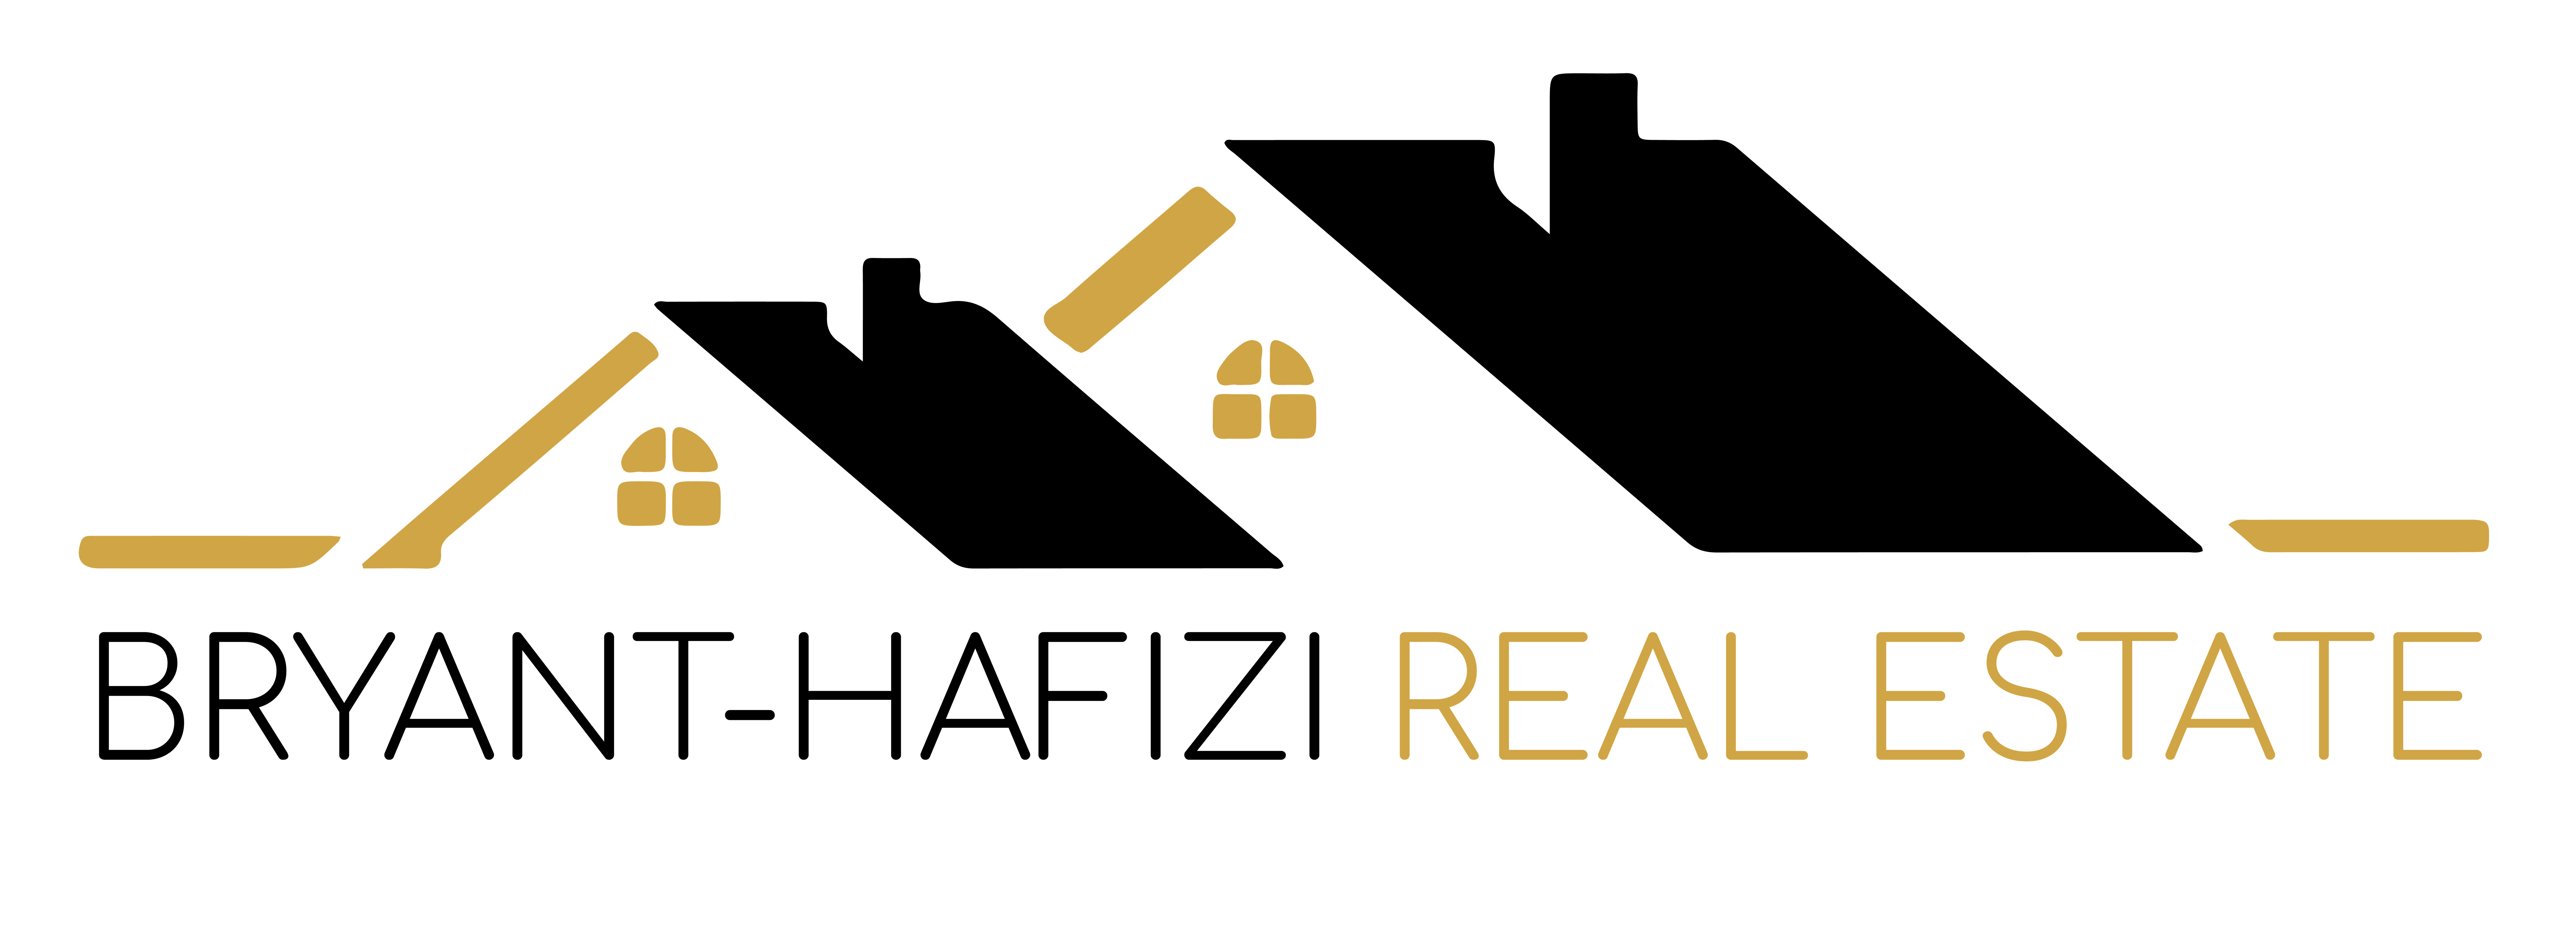 Oak Tree Realtors, Inc.